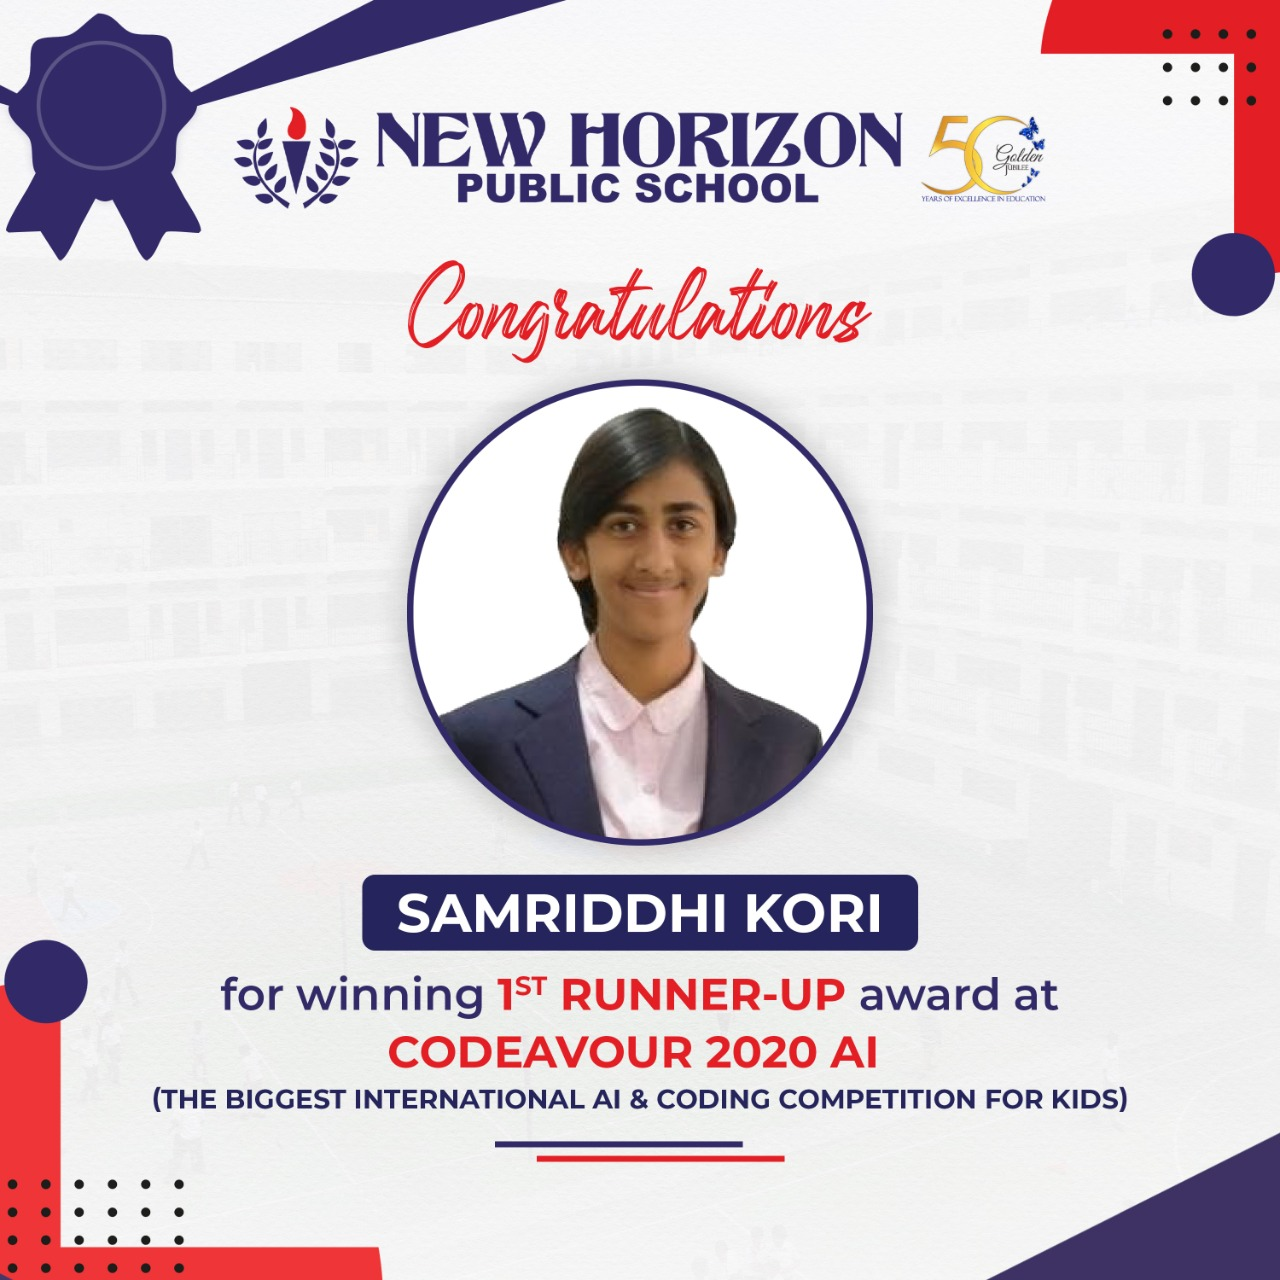 Samriddhi has secured a stunning 1st Runner-Up award at CODEAVOUR 2020 AI among 5492 participants across 99 countries.  Project  – RHETS – RAPID HEALTH EMERGENCY TRAFFIC SYSTEM  Congratulations Samriddhi. We're pleased to see you accomplishing great things. Onwards and upwards